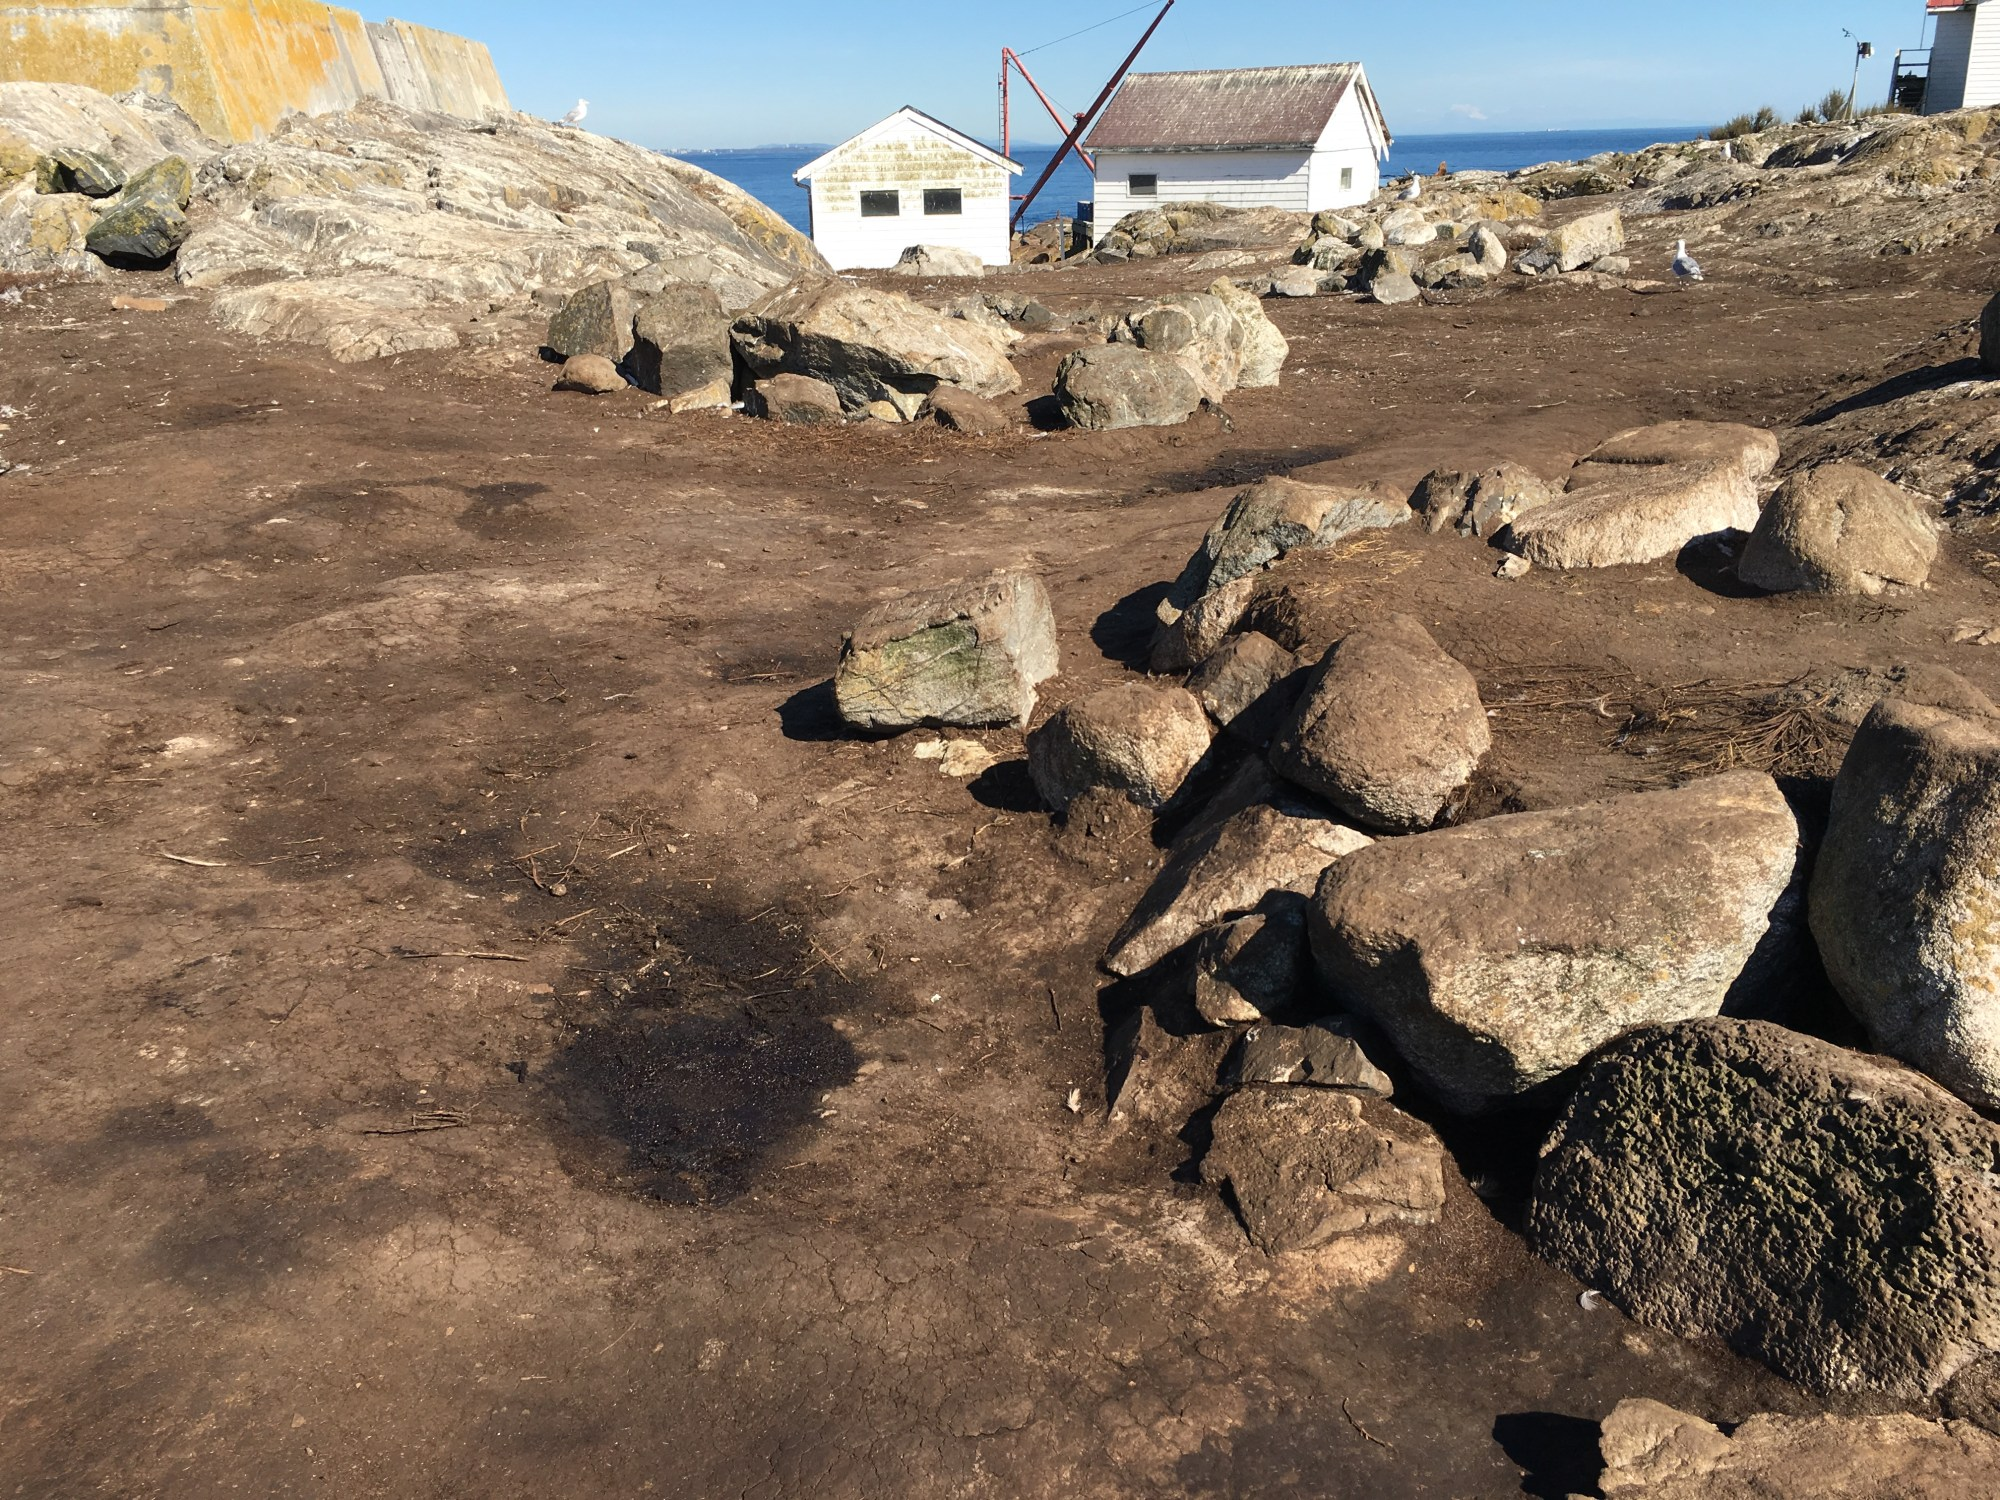 hight resolution of some damage by sealions to the aboriginal burial cairns